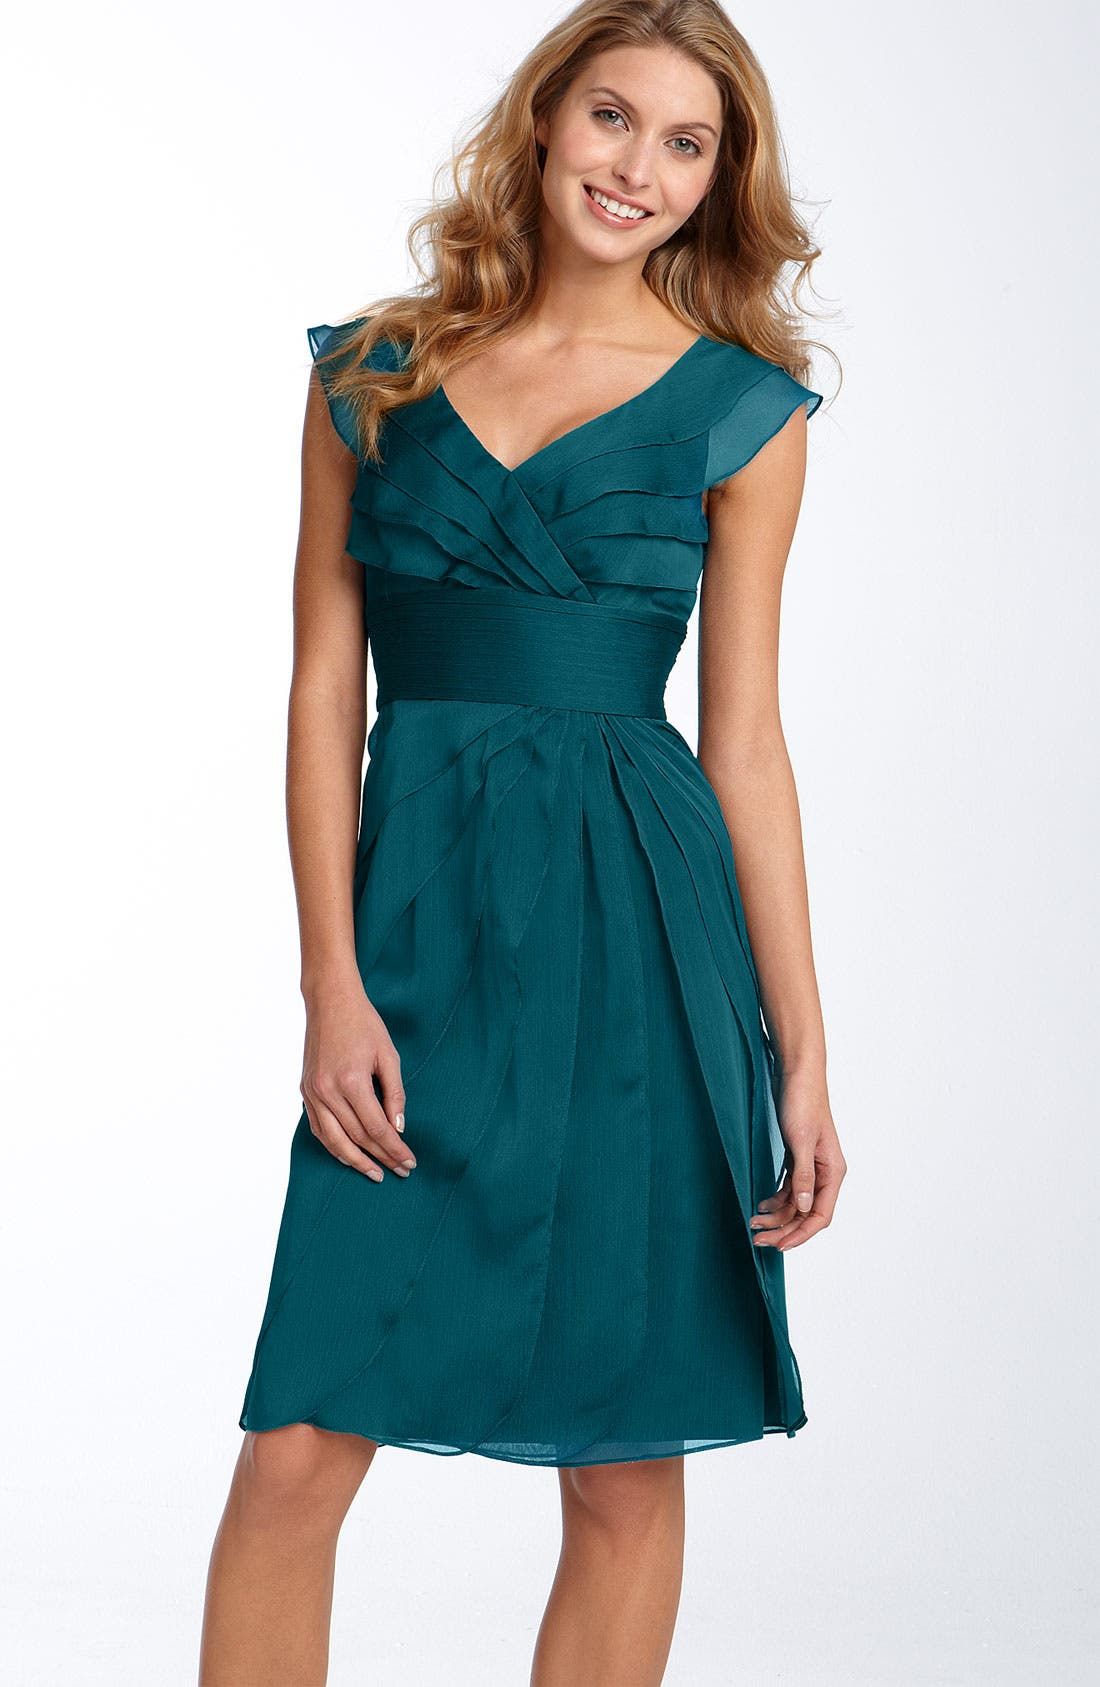 Alternate Image 1 Selected - Adrianna Papell Tiered Chiffon Dress (Regular & Petite)